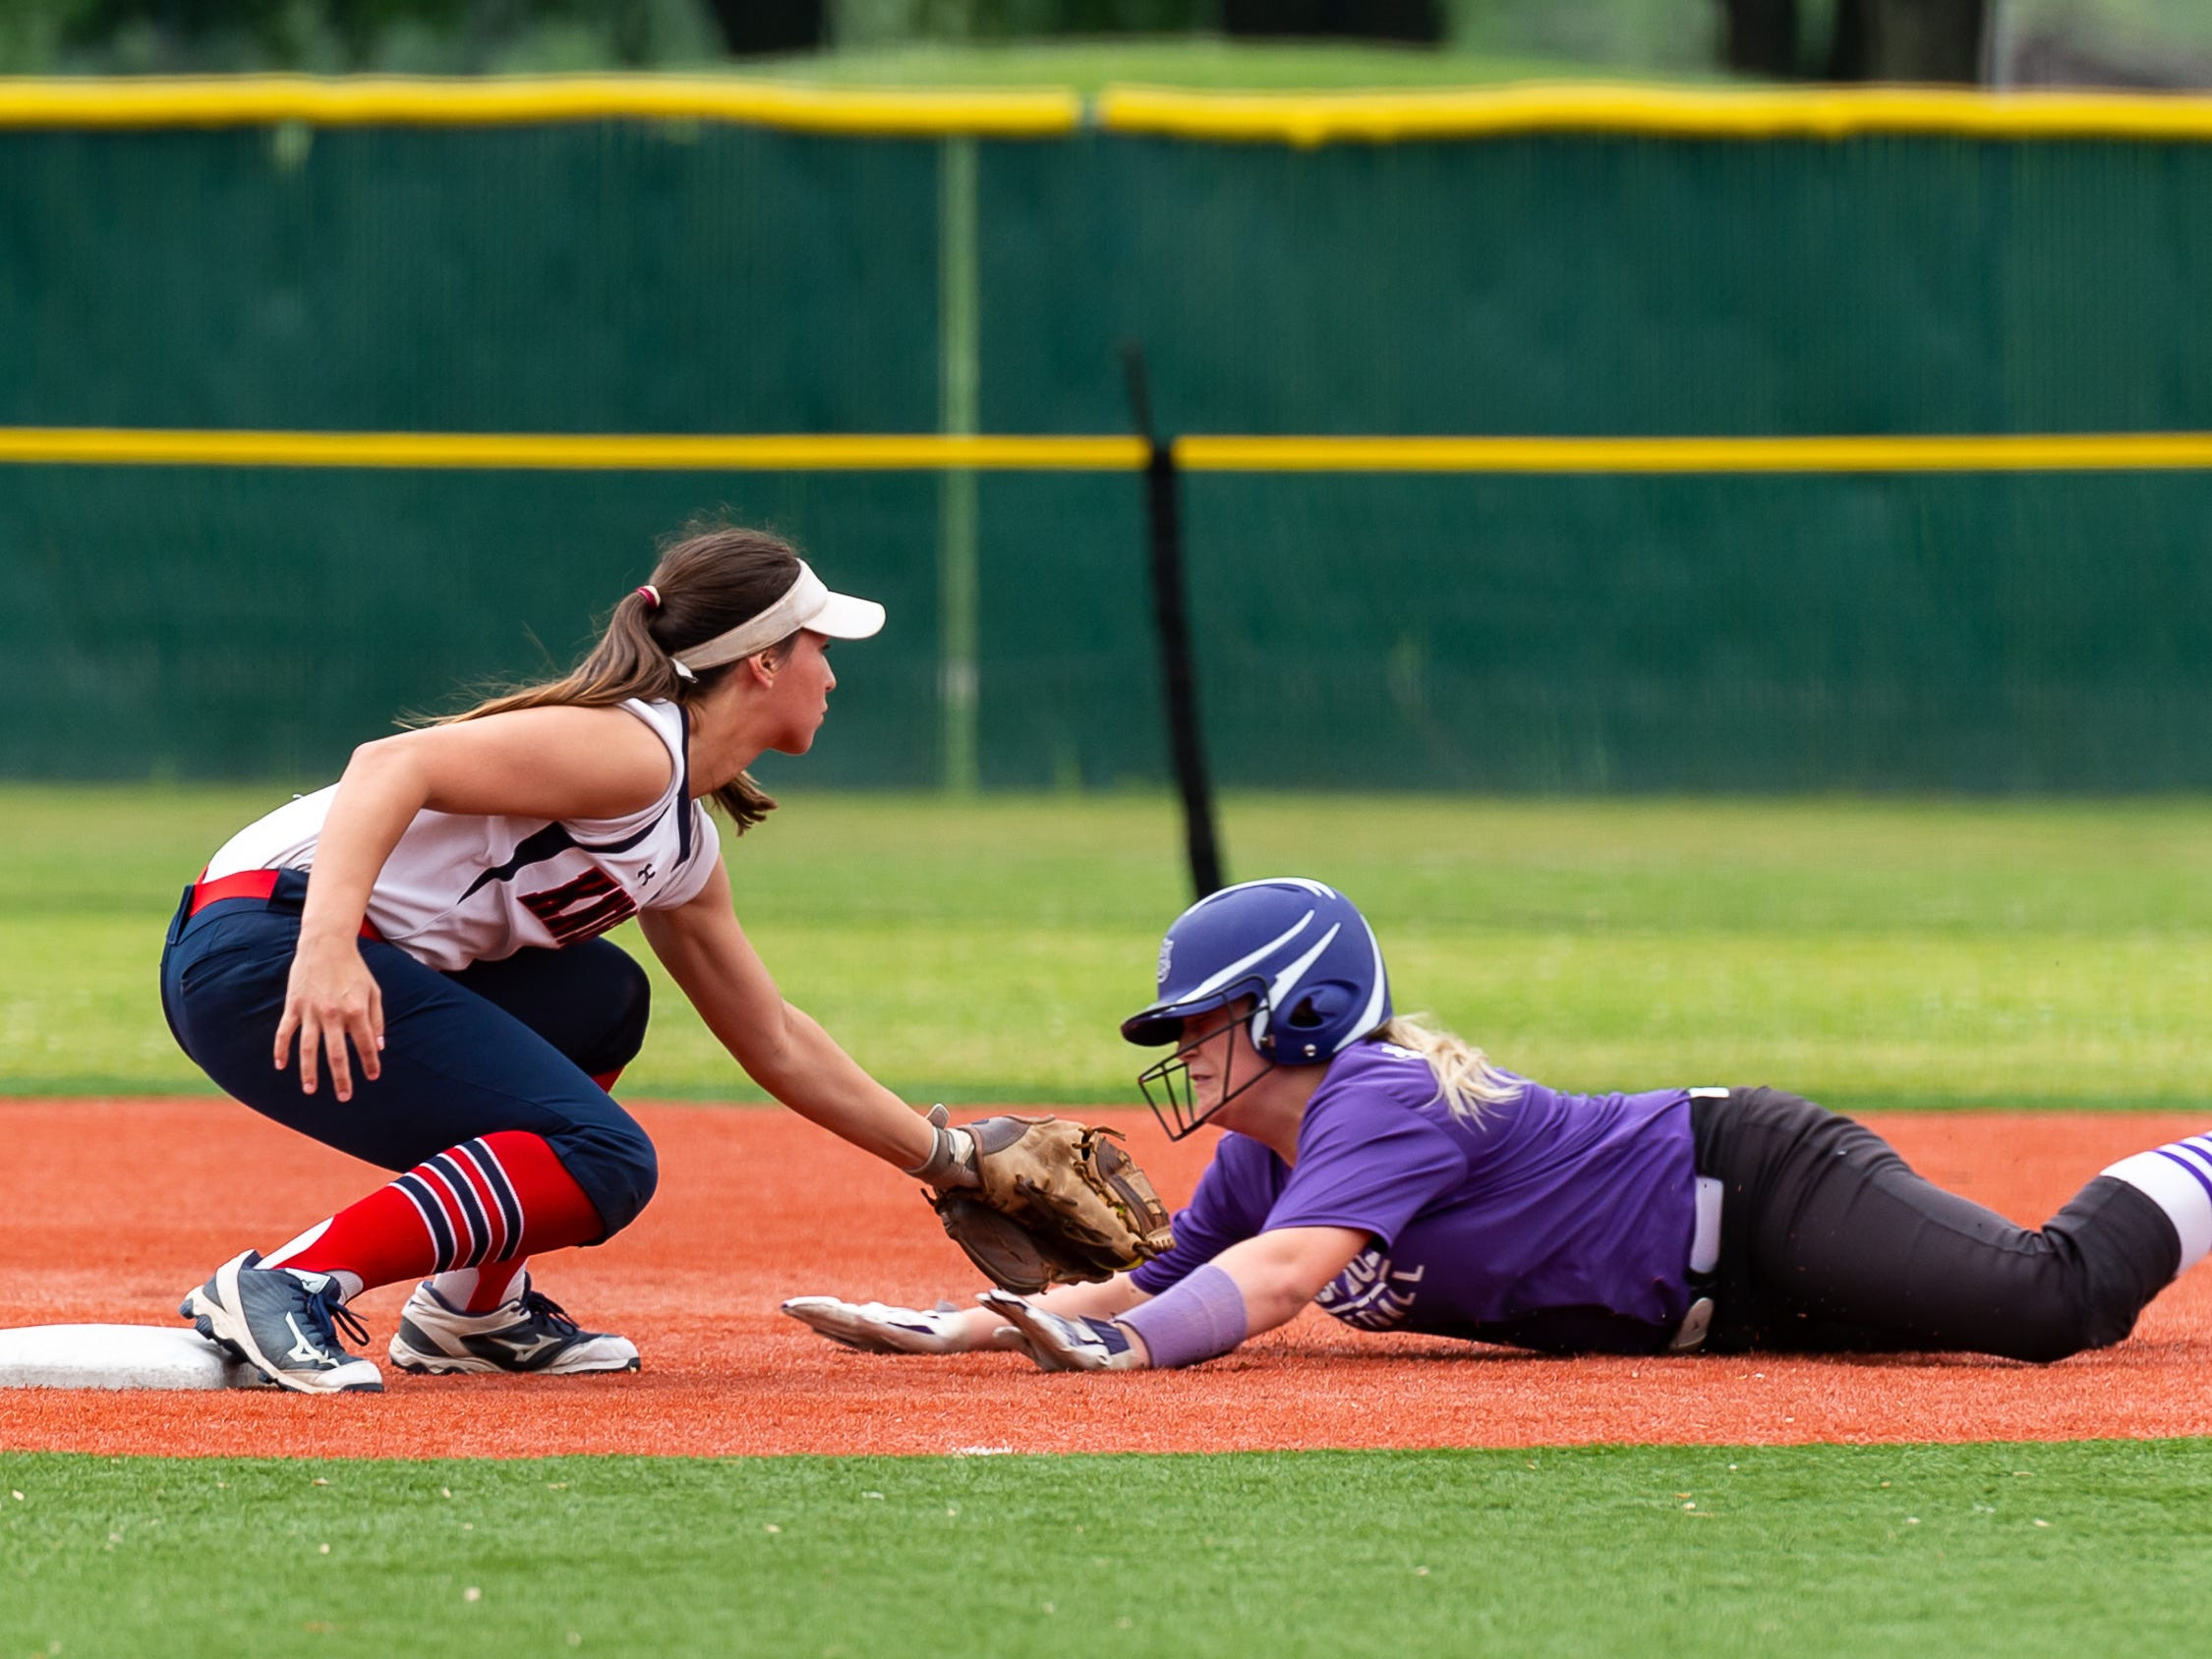 Shortstop Sarah Diaz lays down the tag for the out as  Lafayette Christian Academy softball takes on University Academy in the forst round of the LHSAA playoffs. Friday, April 12, 2019.